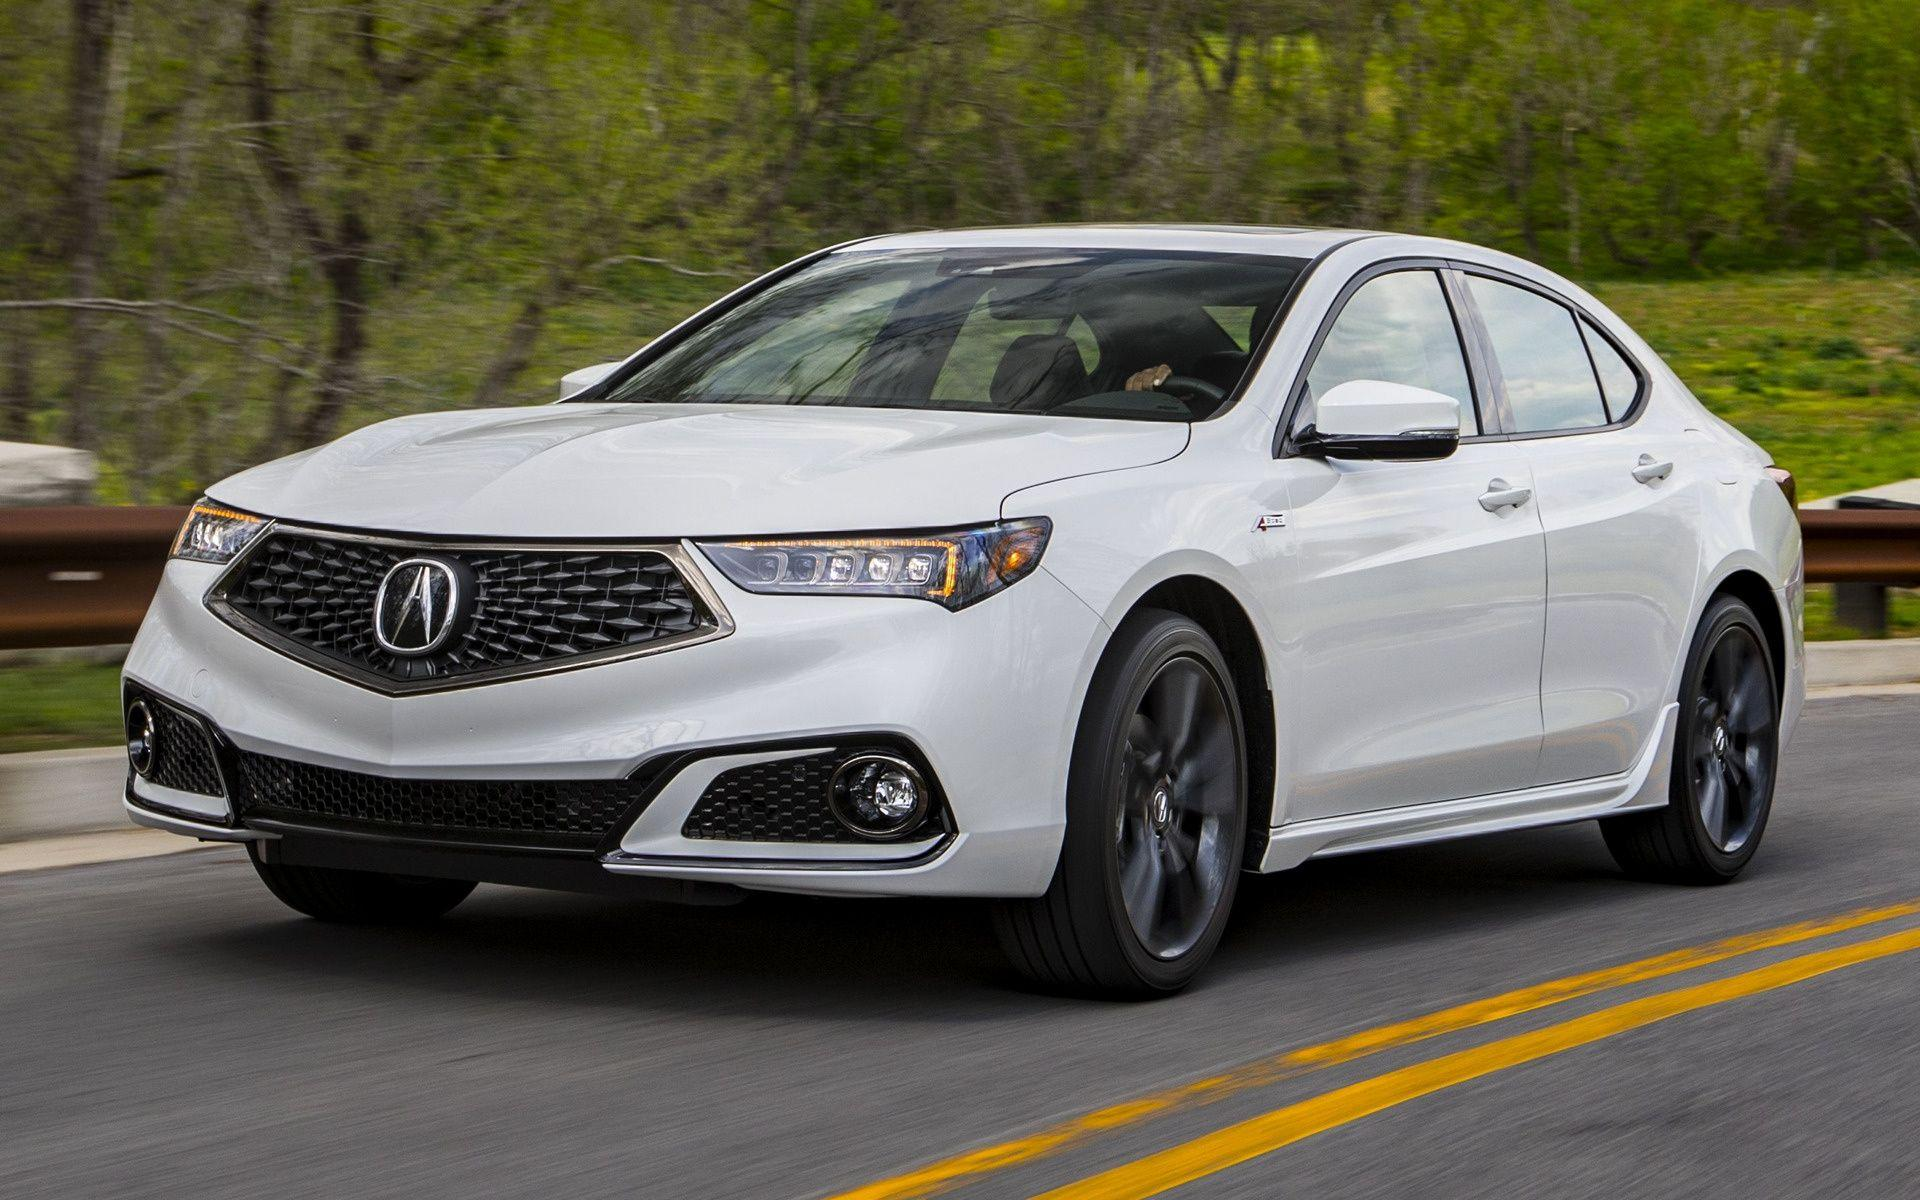 Acura TLX A-Spec (2018) Wallpapers and HD Images - Car Pixel